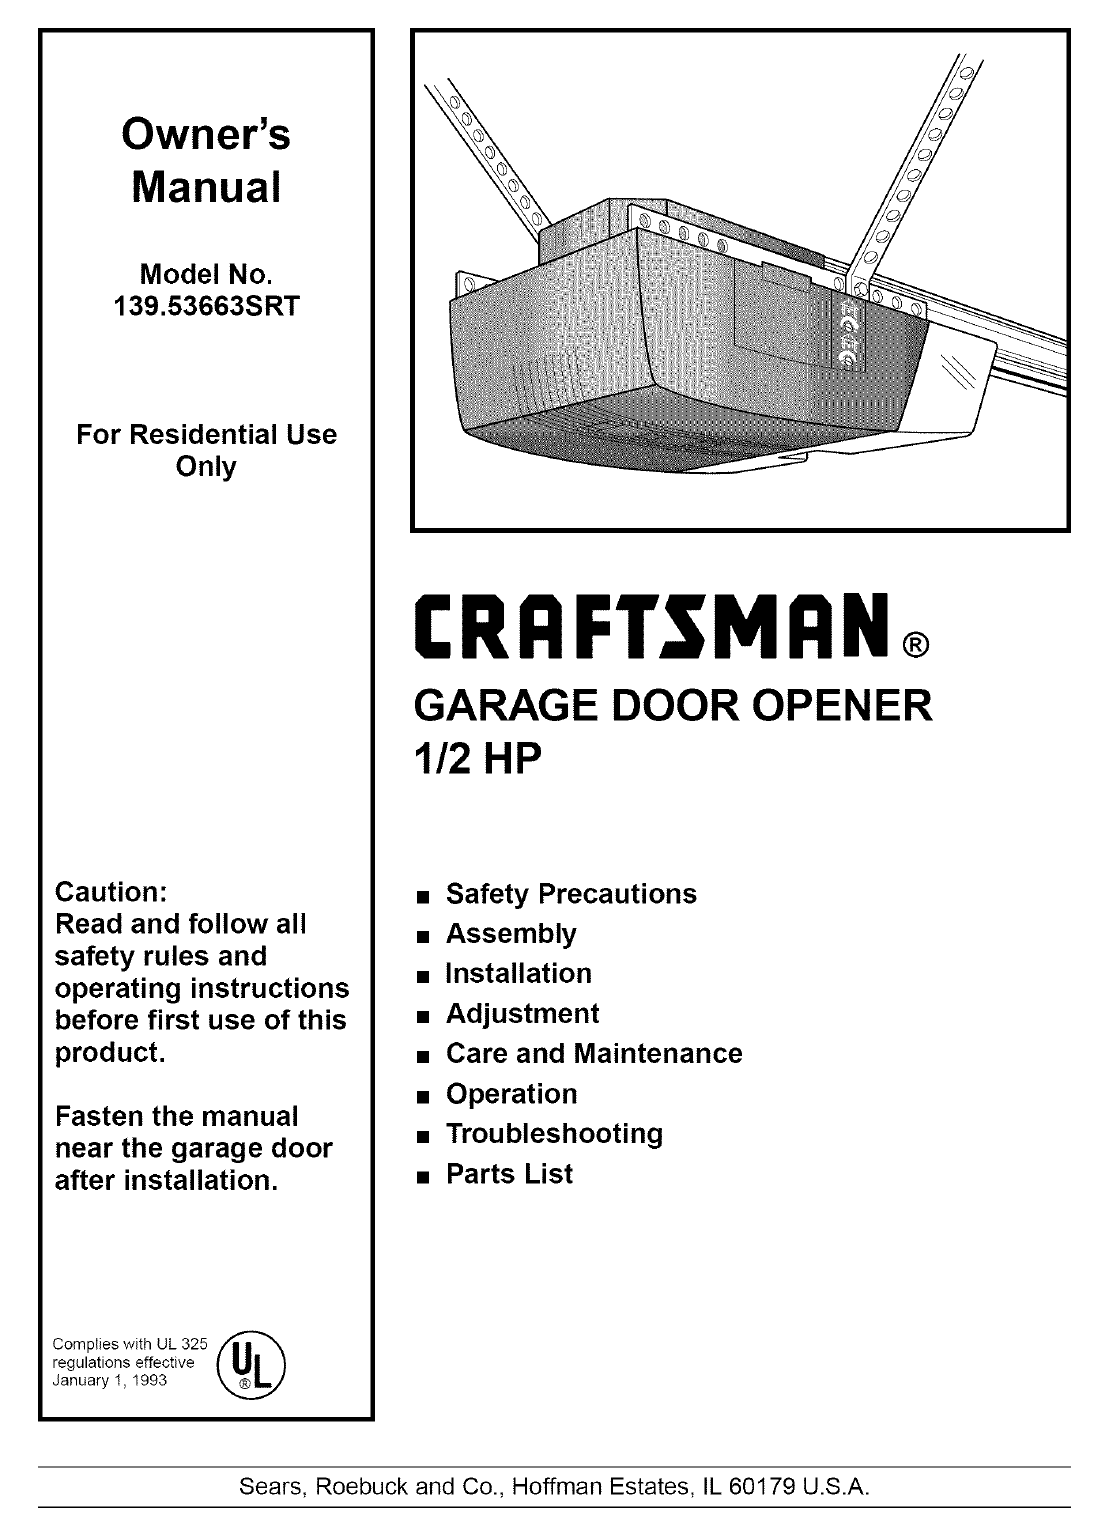 Craftsman Garage Door Opener Troubleshooting Flashing